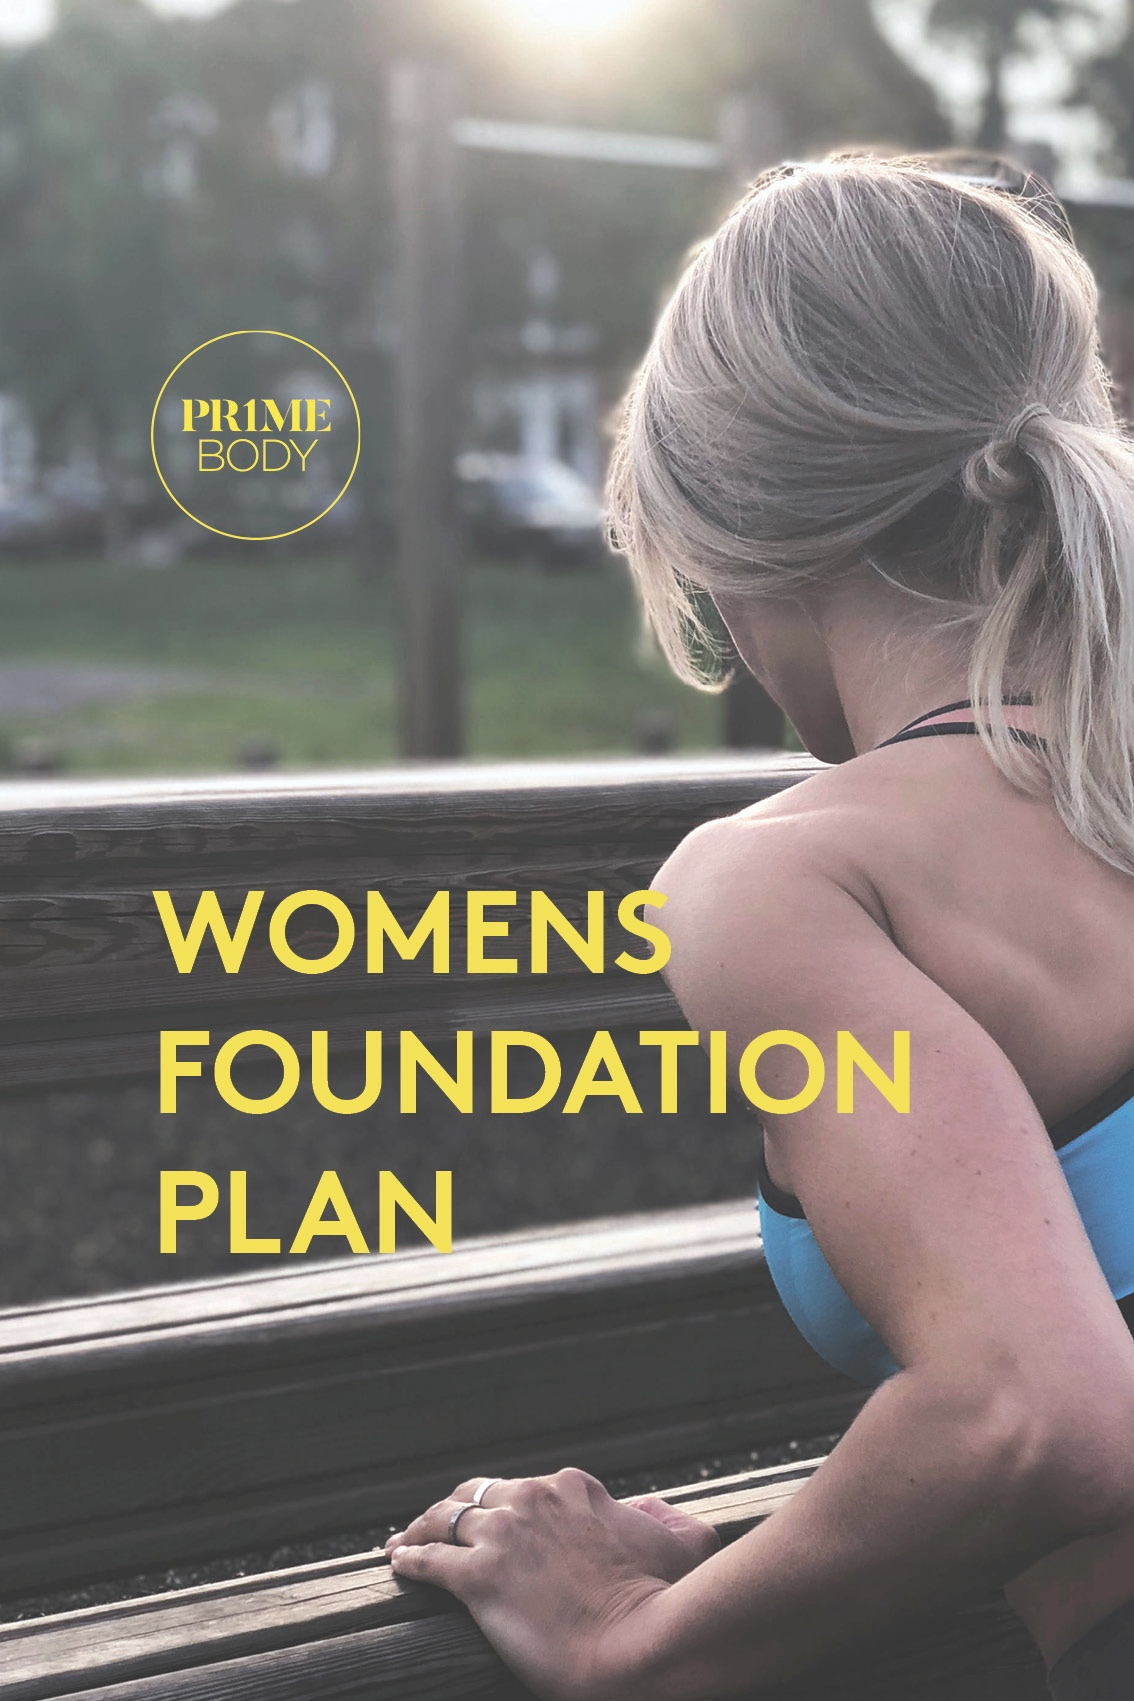 WOMEN'S 12 WEEK FOUNDATION PLAN